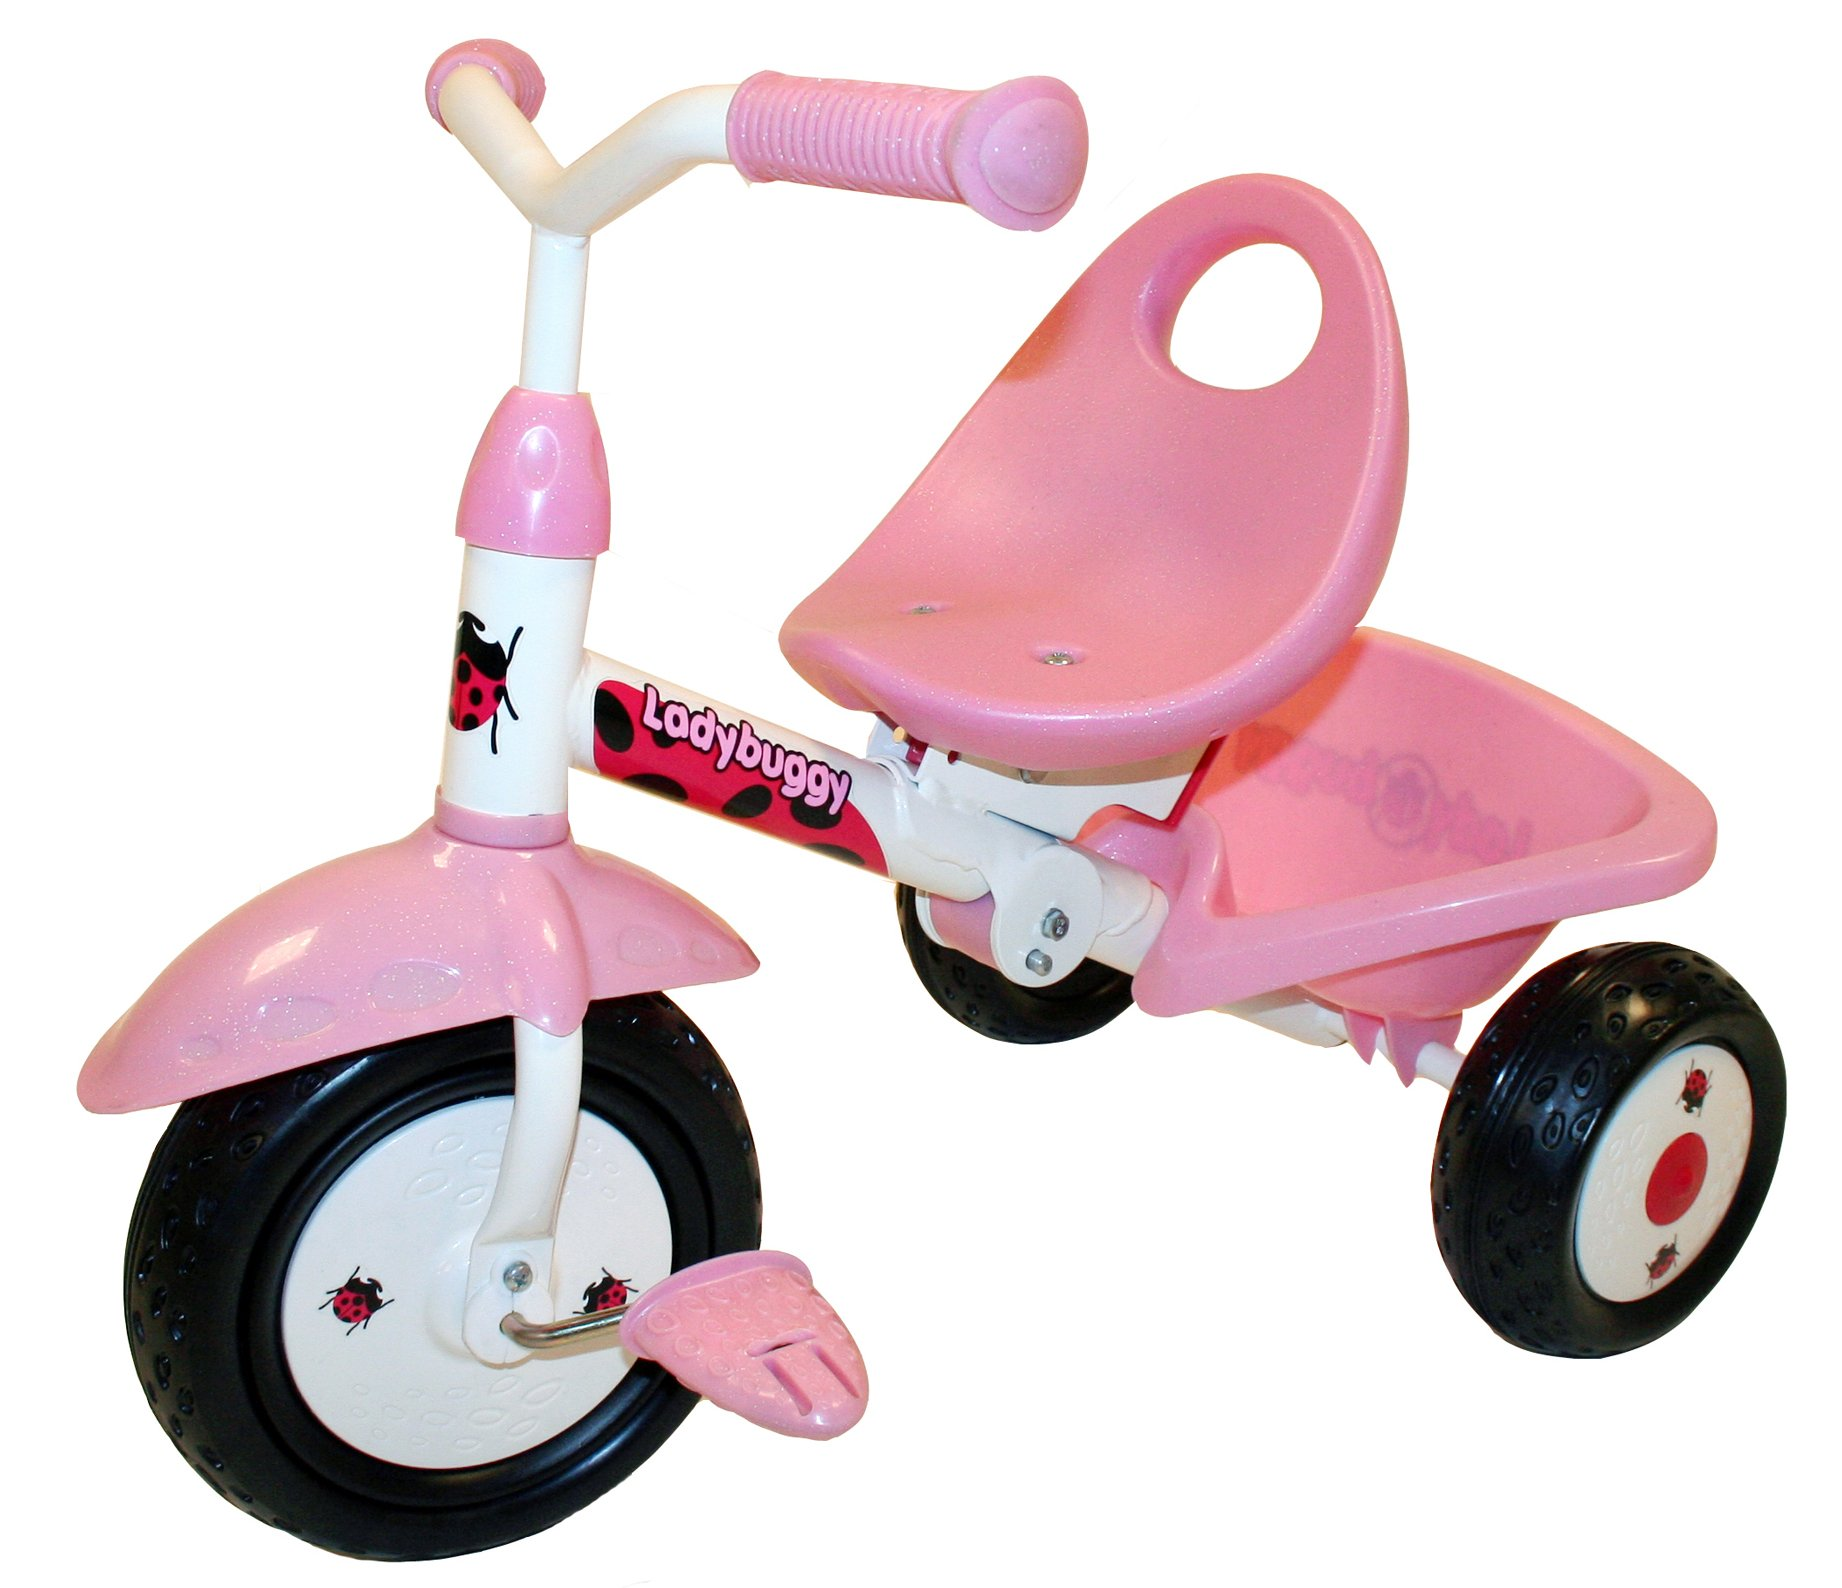 Kettler Kiddi-o by Fold 'n Ride Trike with Adjustable Seat: LadyBuggy, Youth Ages 1.5+